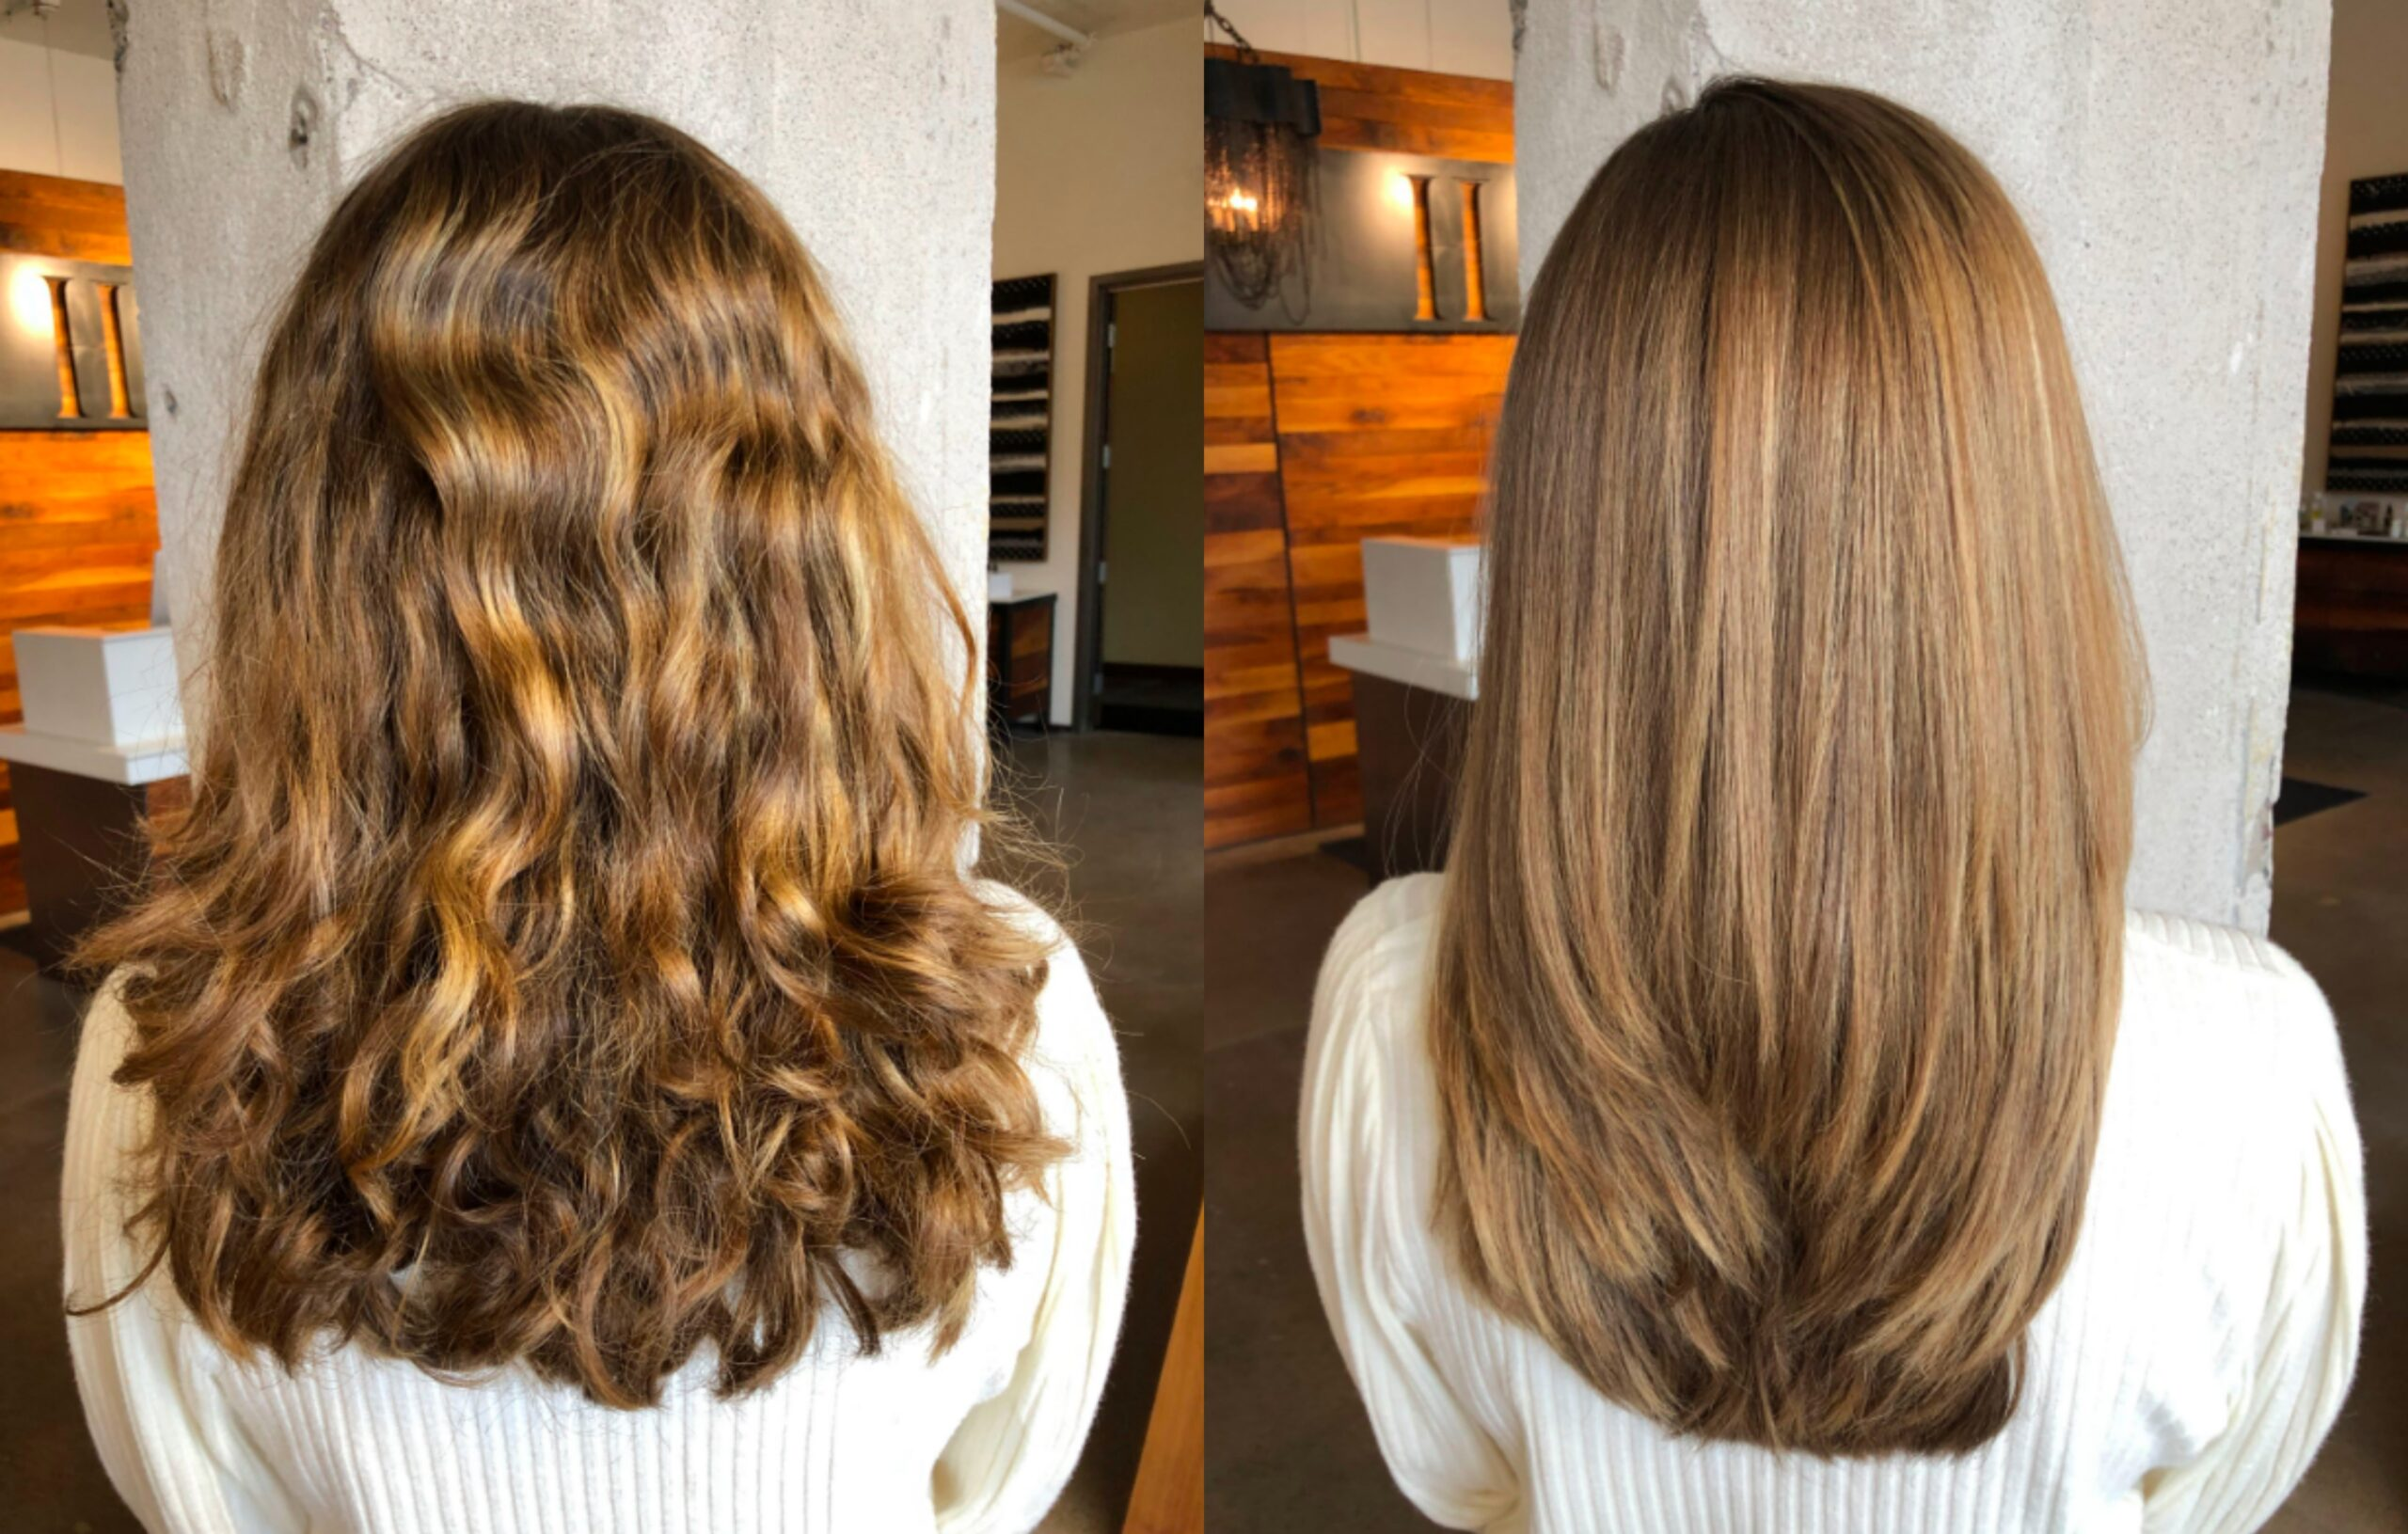 Benefits Of Keratin Treatment And How To Get Smooth Hair With Keratin At Home